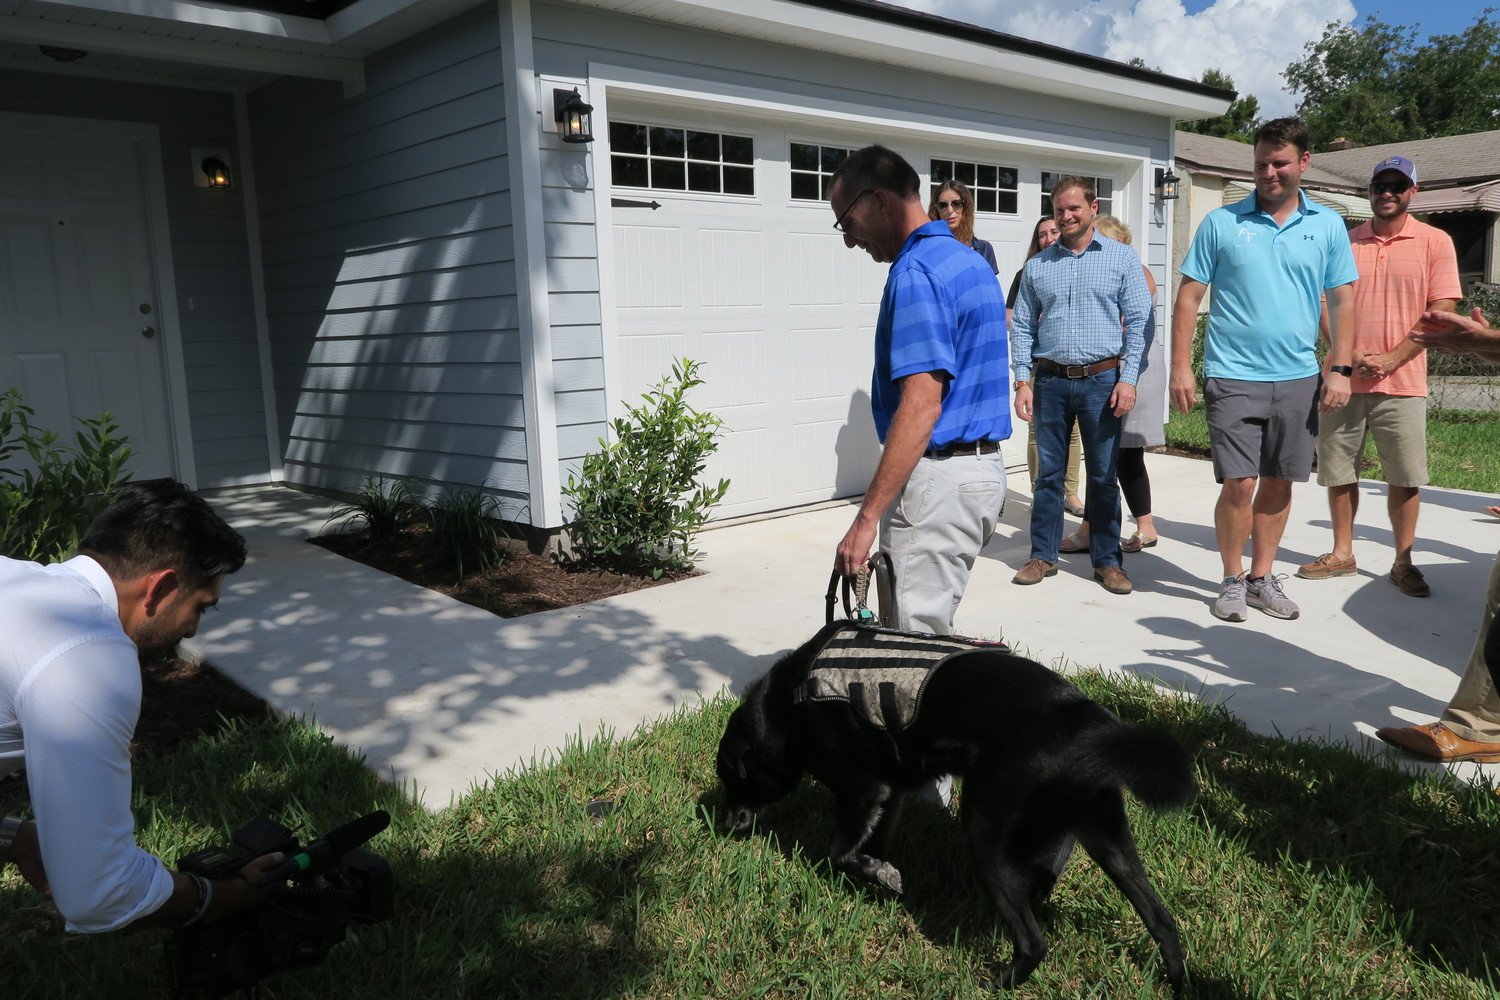 Army veteran Rick Smith and hist service dog Berkley walk into their new home for the first time.